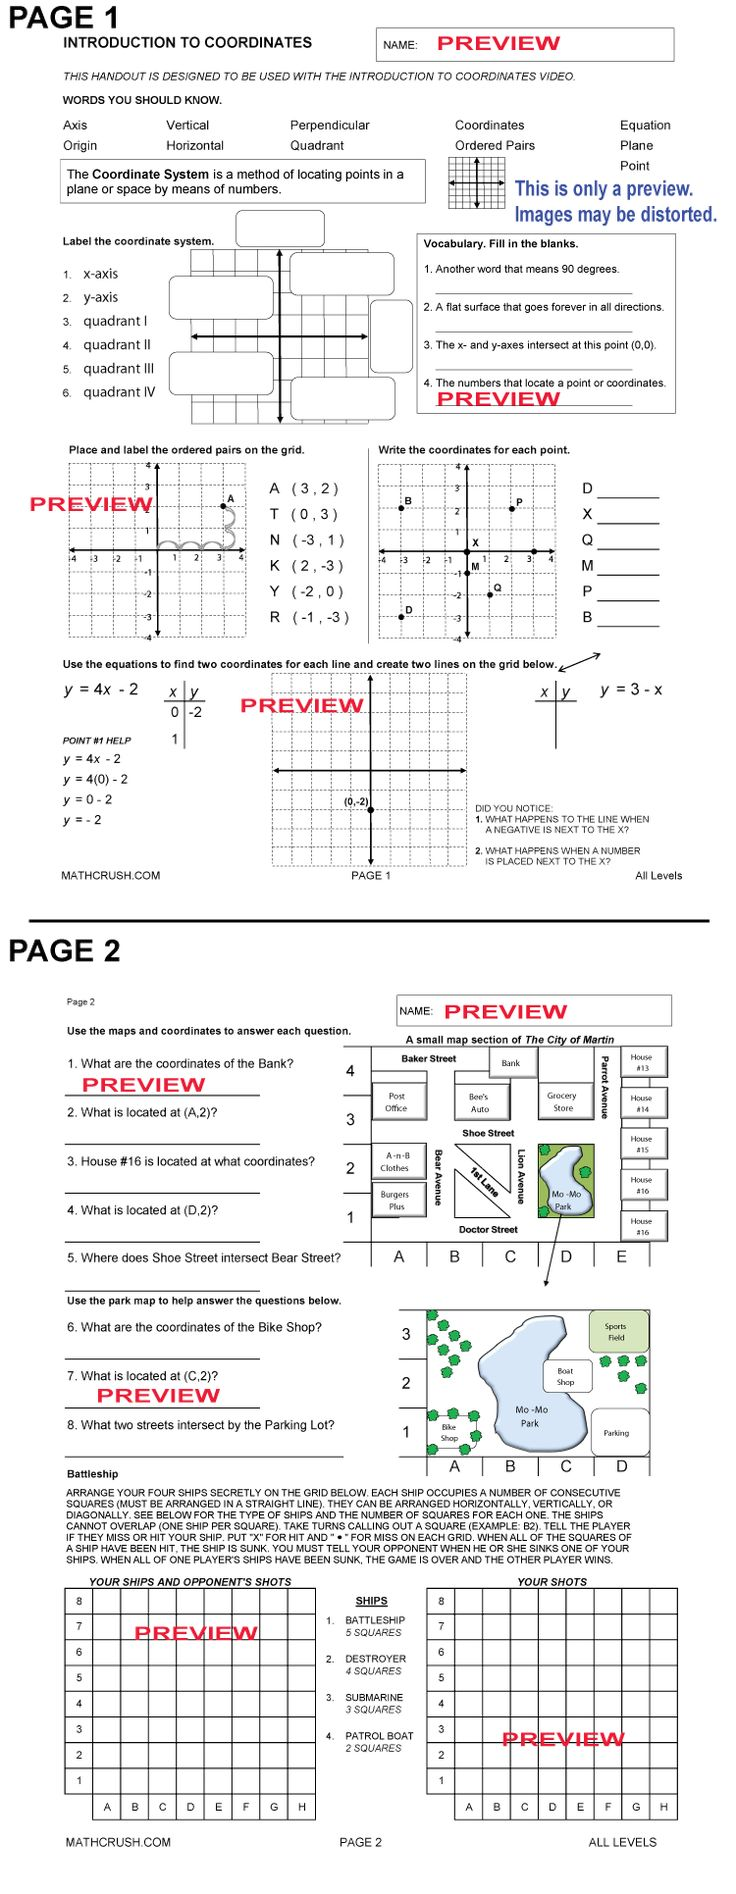 worksheet Math Aids Geometry best 25 coordinate geometry ideas on pinterest plane math area vid intro to coordinates pv gif pixels geometrycartesian coordinatesmath